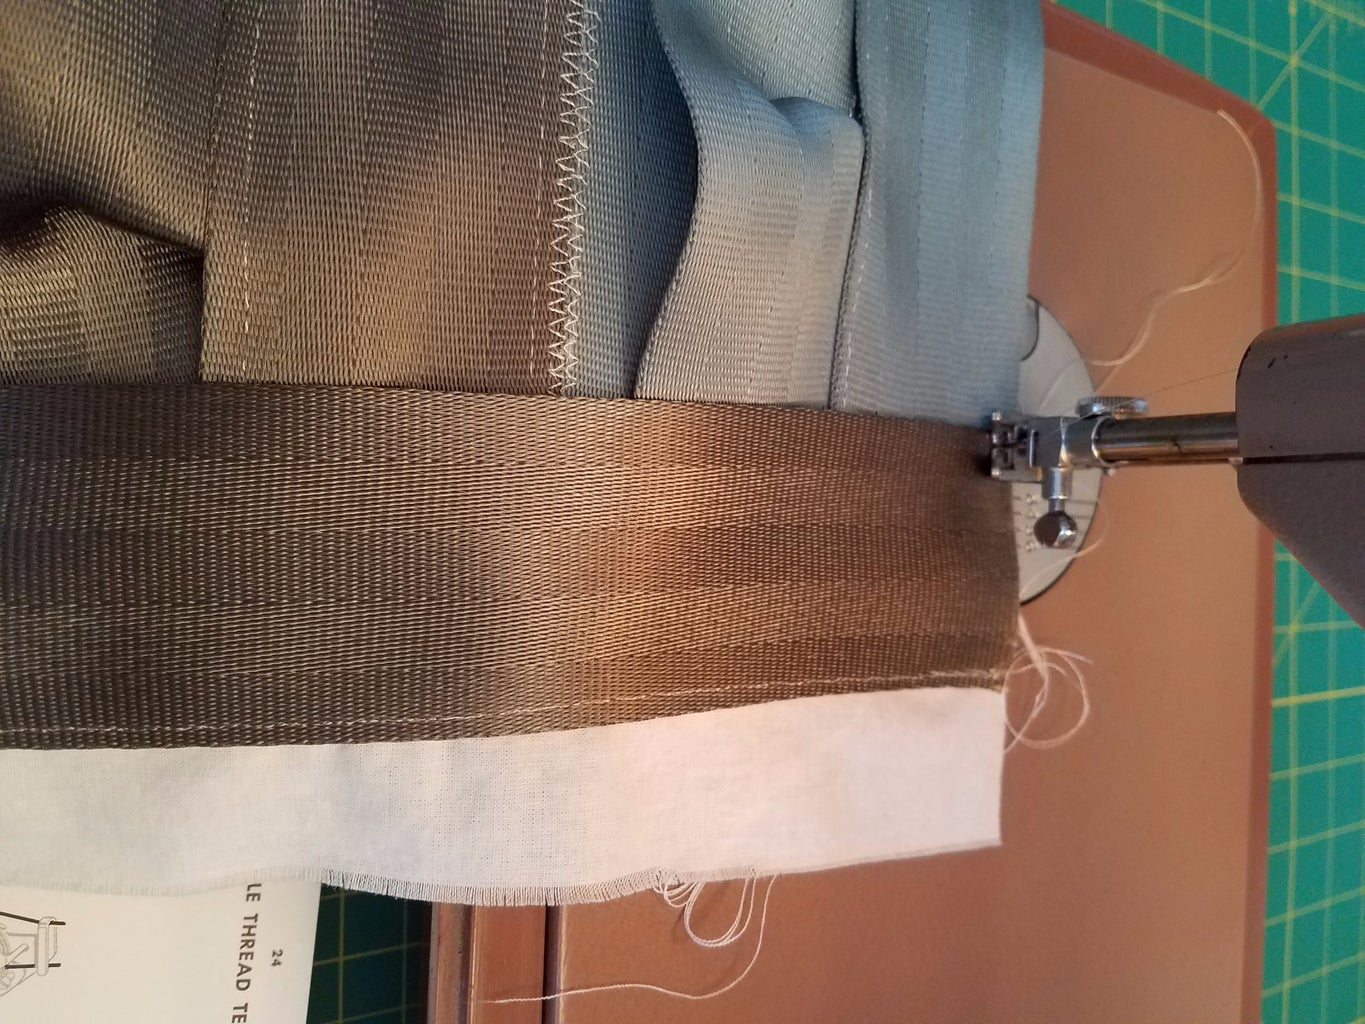 Sew Sides on Front and Back of Bag